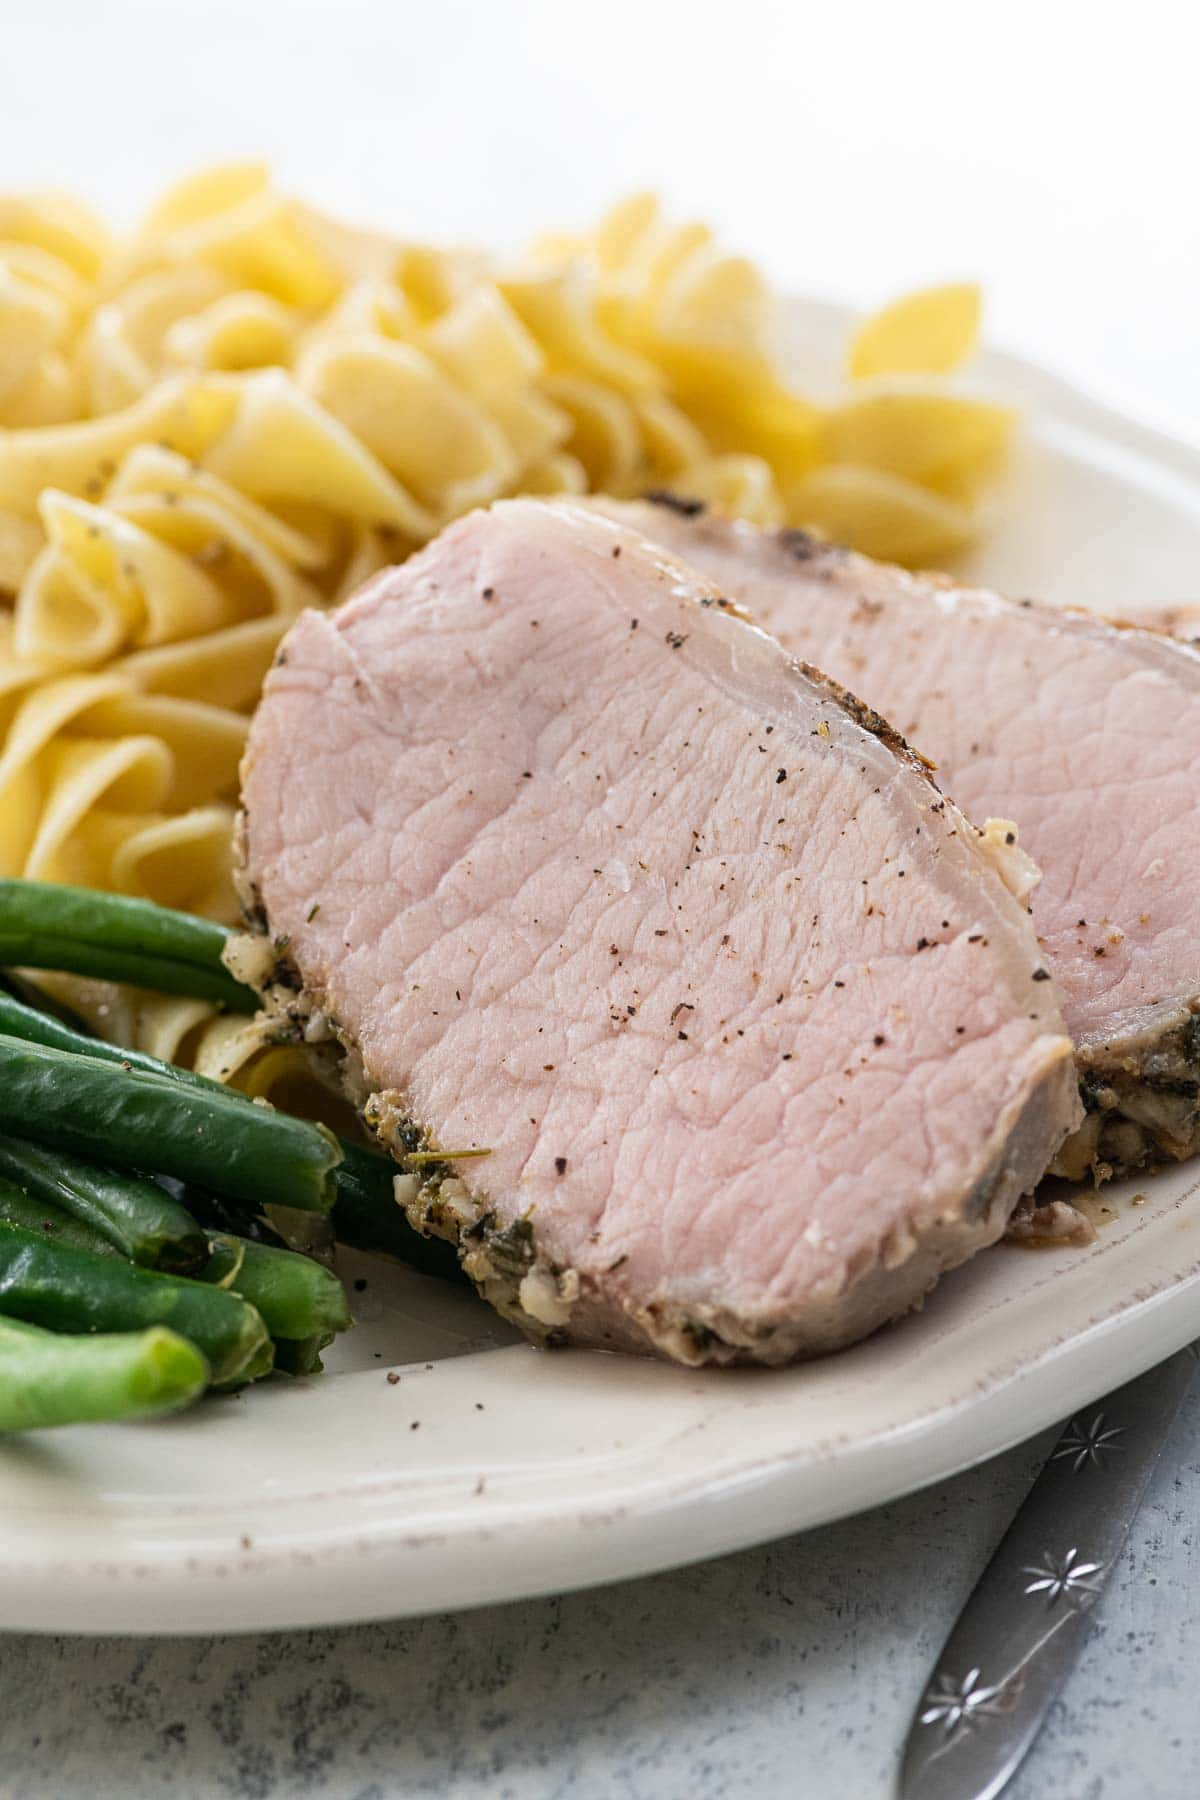 sous vide pork roast, green beans, and egg noodles on a plate